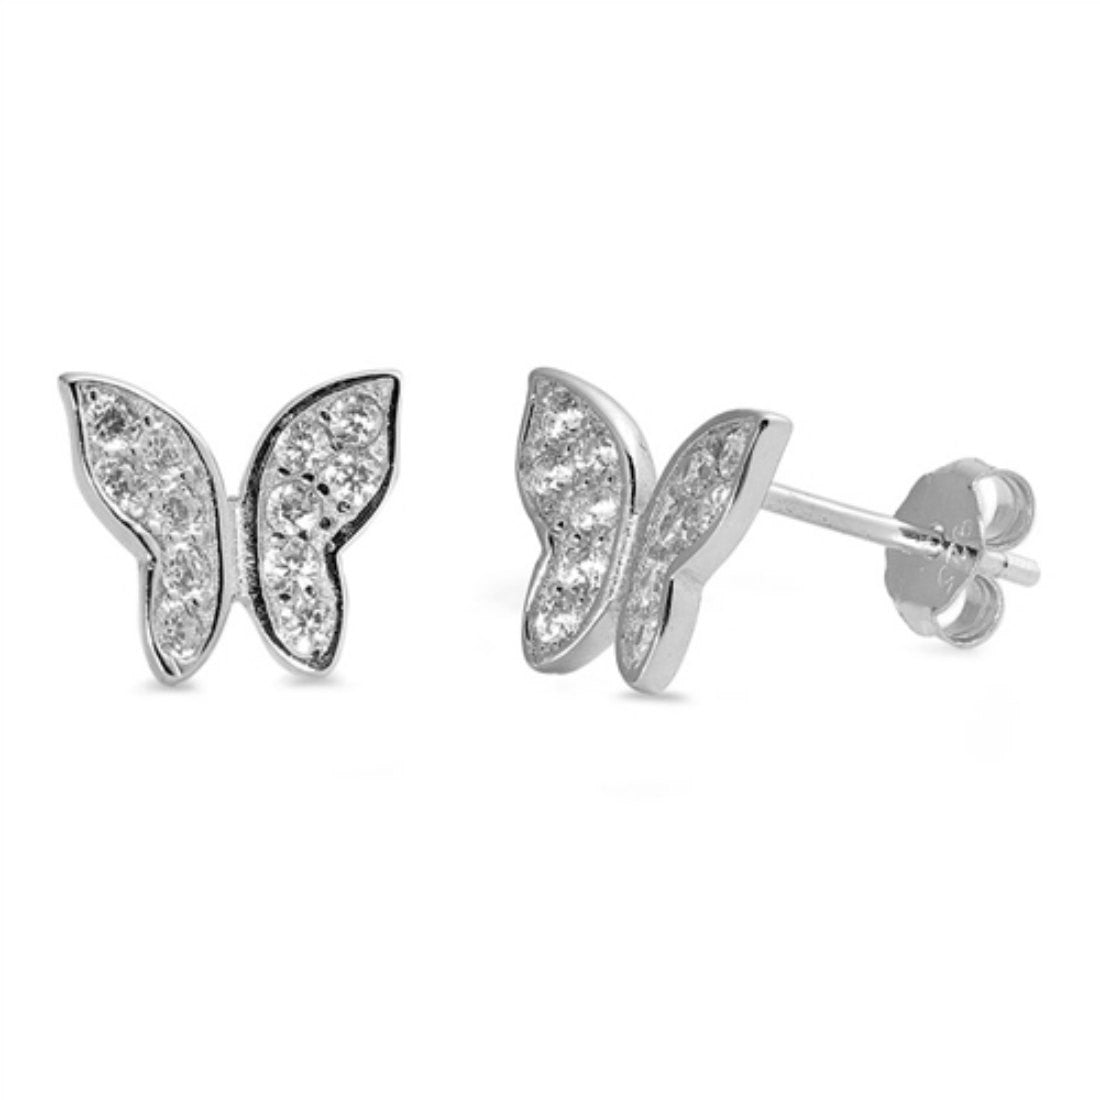 Butterfly Earring Solid 925 Stelring Silver Round Pave Clear CZ Cute Butterfly Stud Post Earring Gift - Blue Apple Jewelry